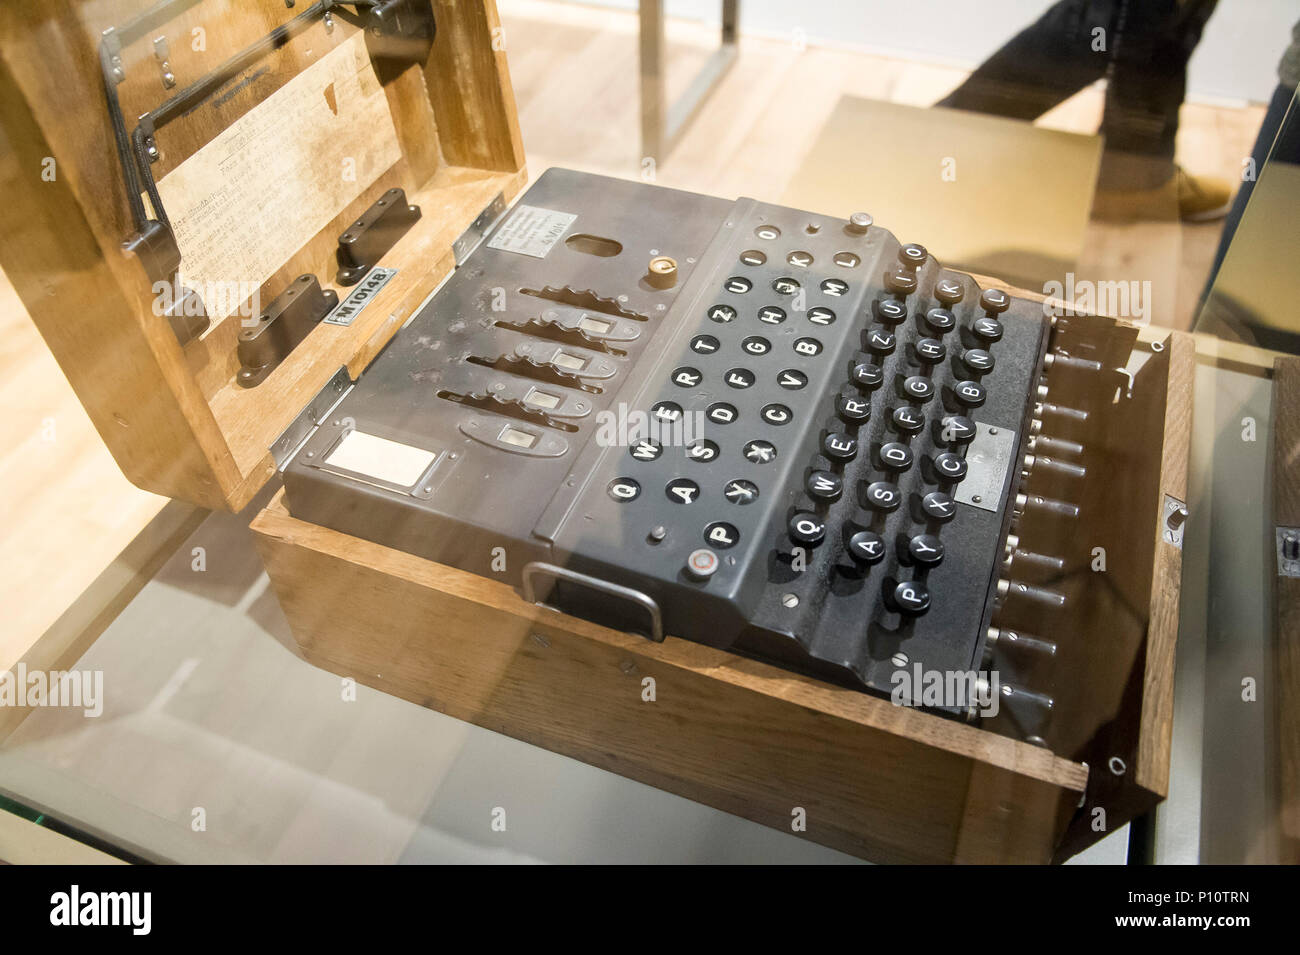 Enigma machine, German electro mechanical rotor cipher machine, used by Nazi German to protect commercial, diplomatic and military communication. Poli Stock Photo